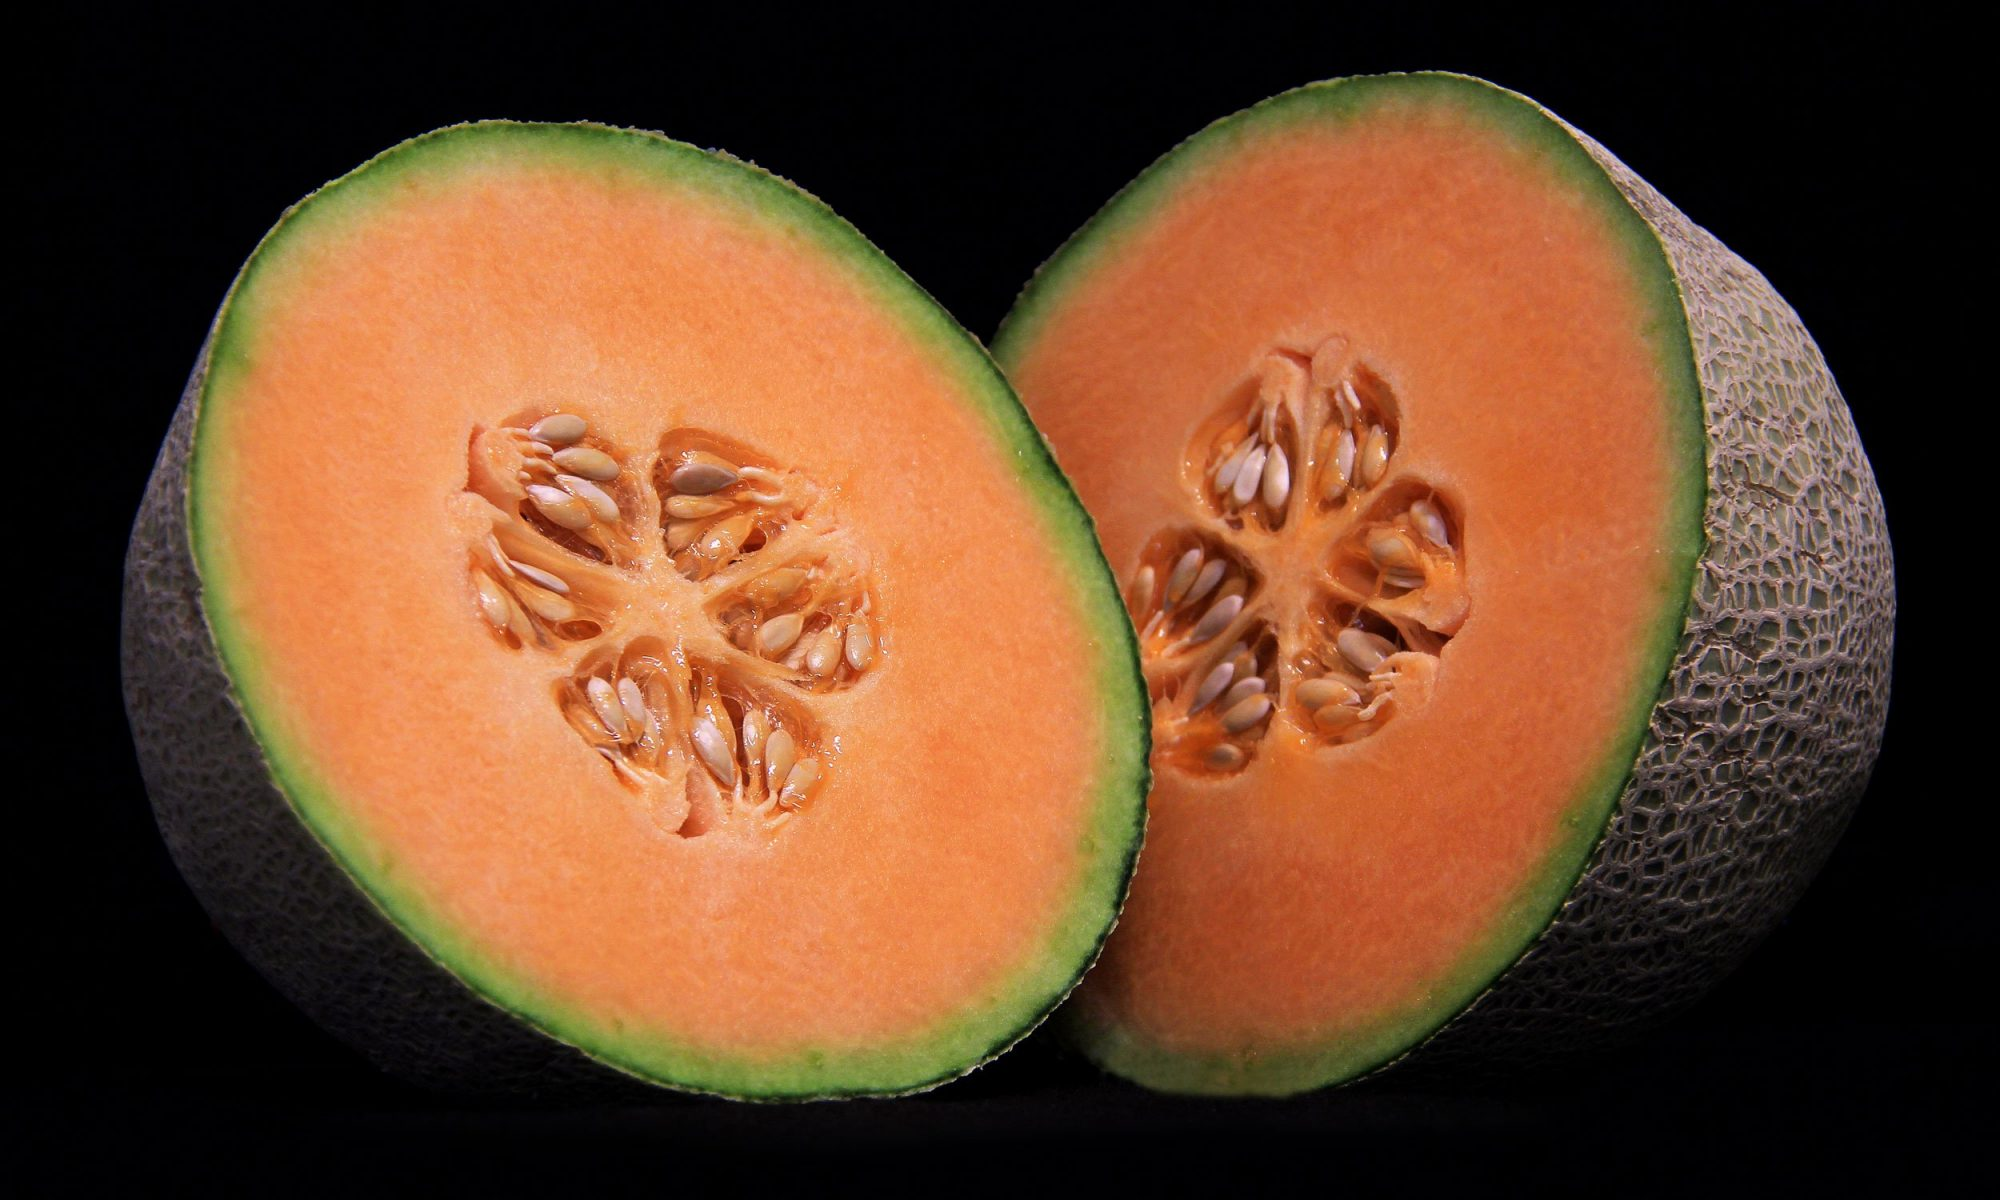 EC: This New Kind of Cantaloupe Will Totally Change Your Fruit Salad